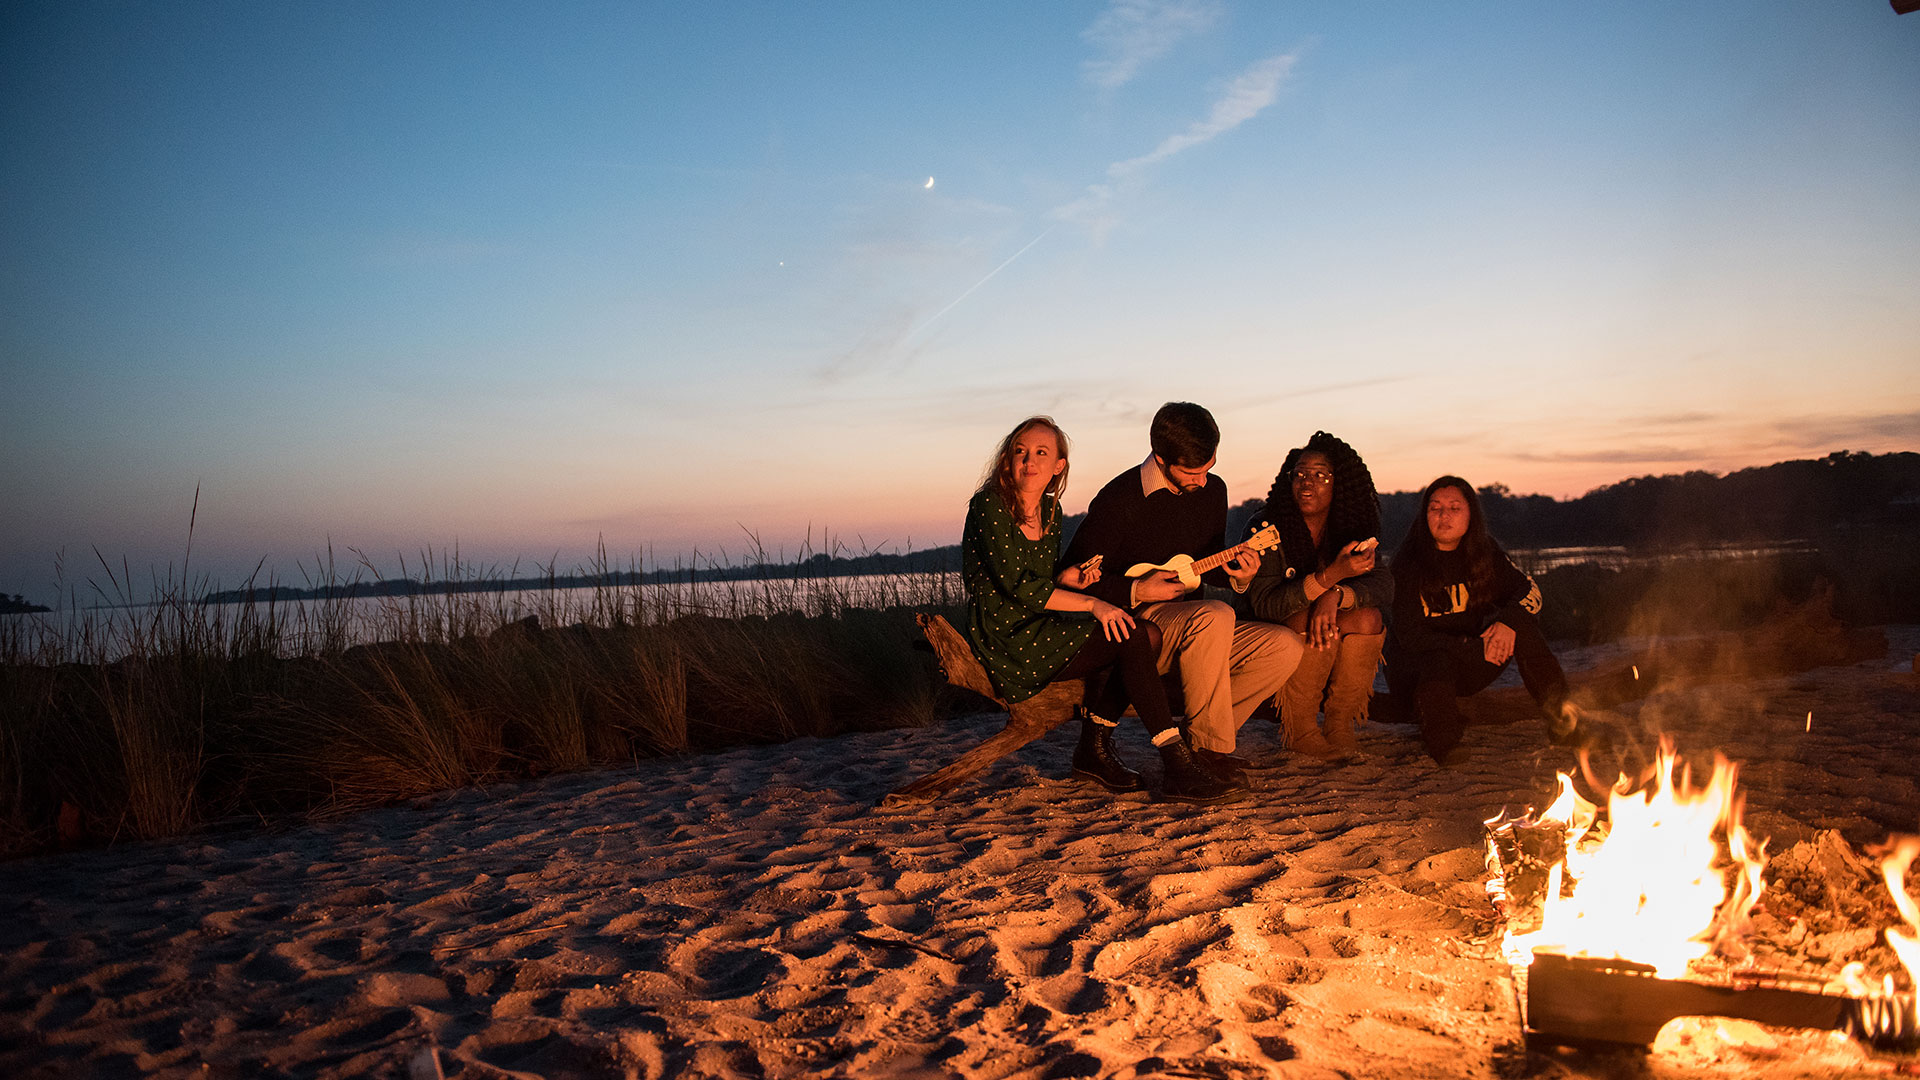 Group of 4 students site by a bonfire on the beach by St. Mary's river.